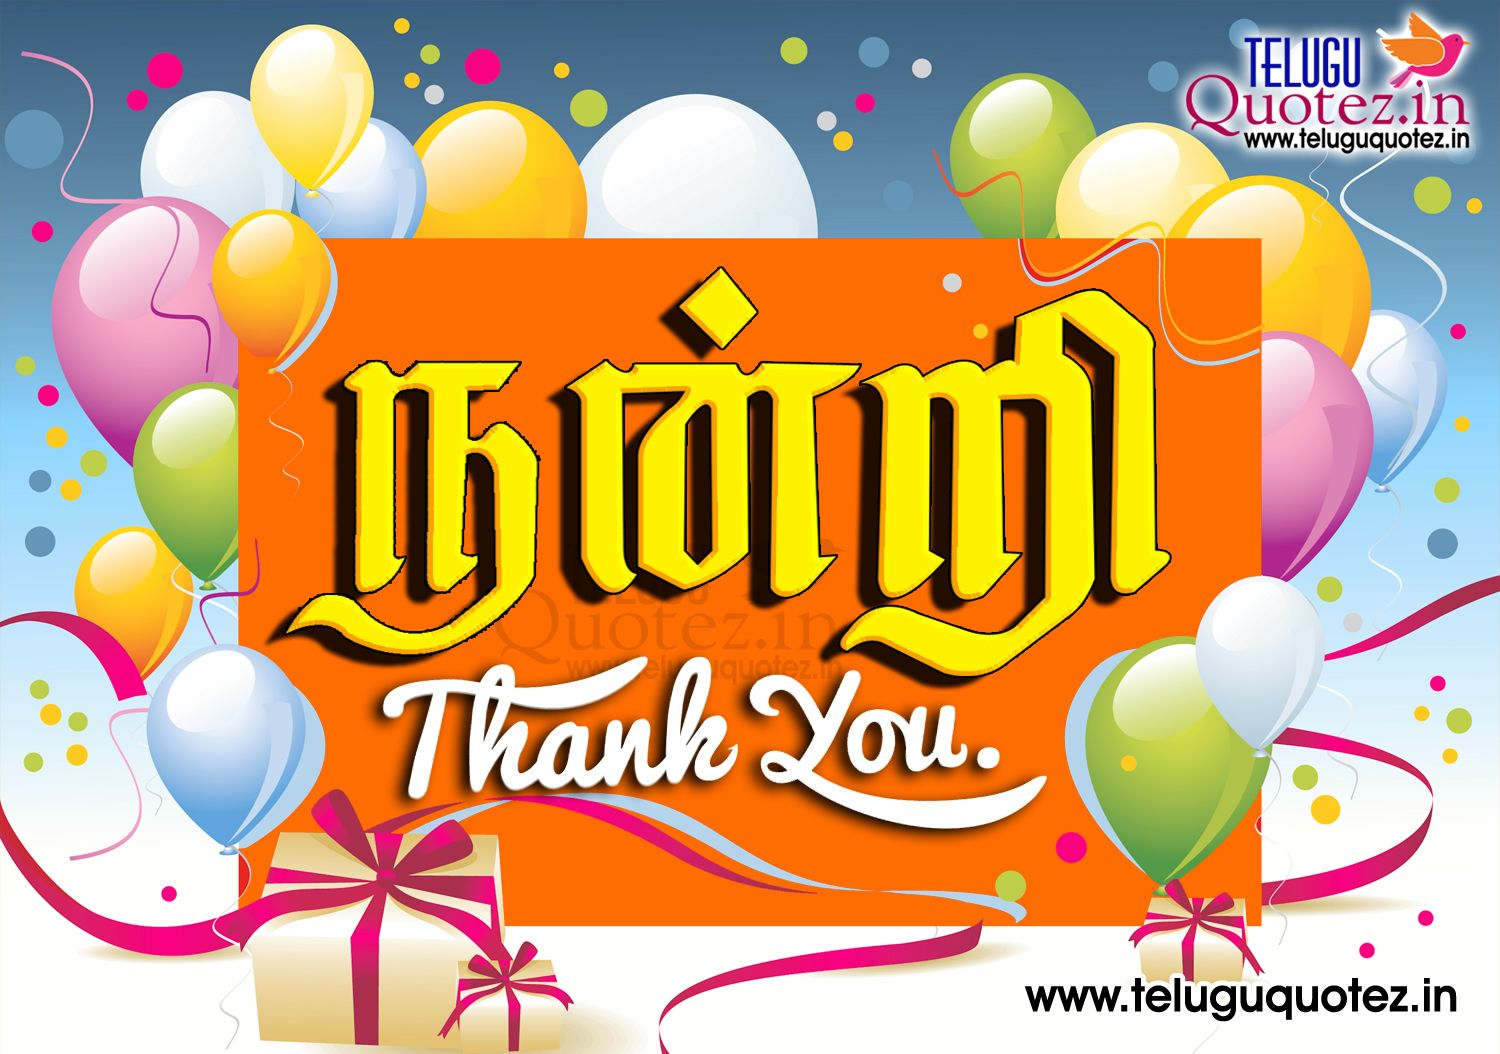 Thank you nandri quotes for birthday wishes in tamil language thank you nandri quotes for birthday wishes in m4hsunfo